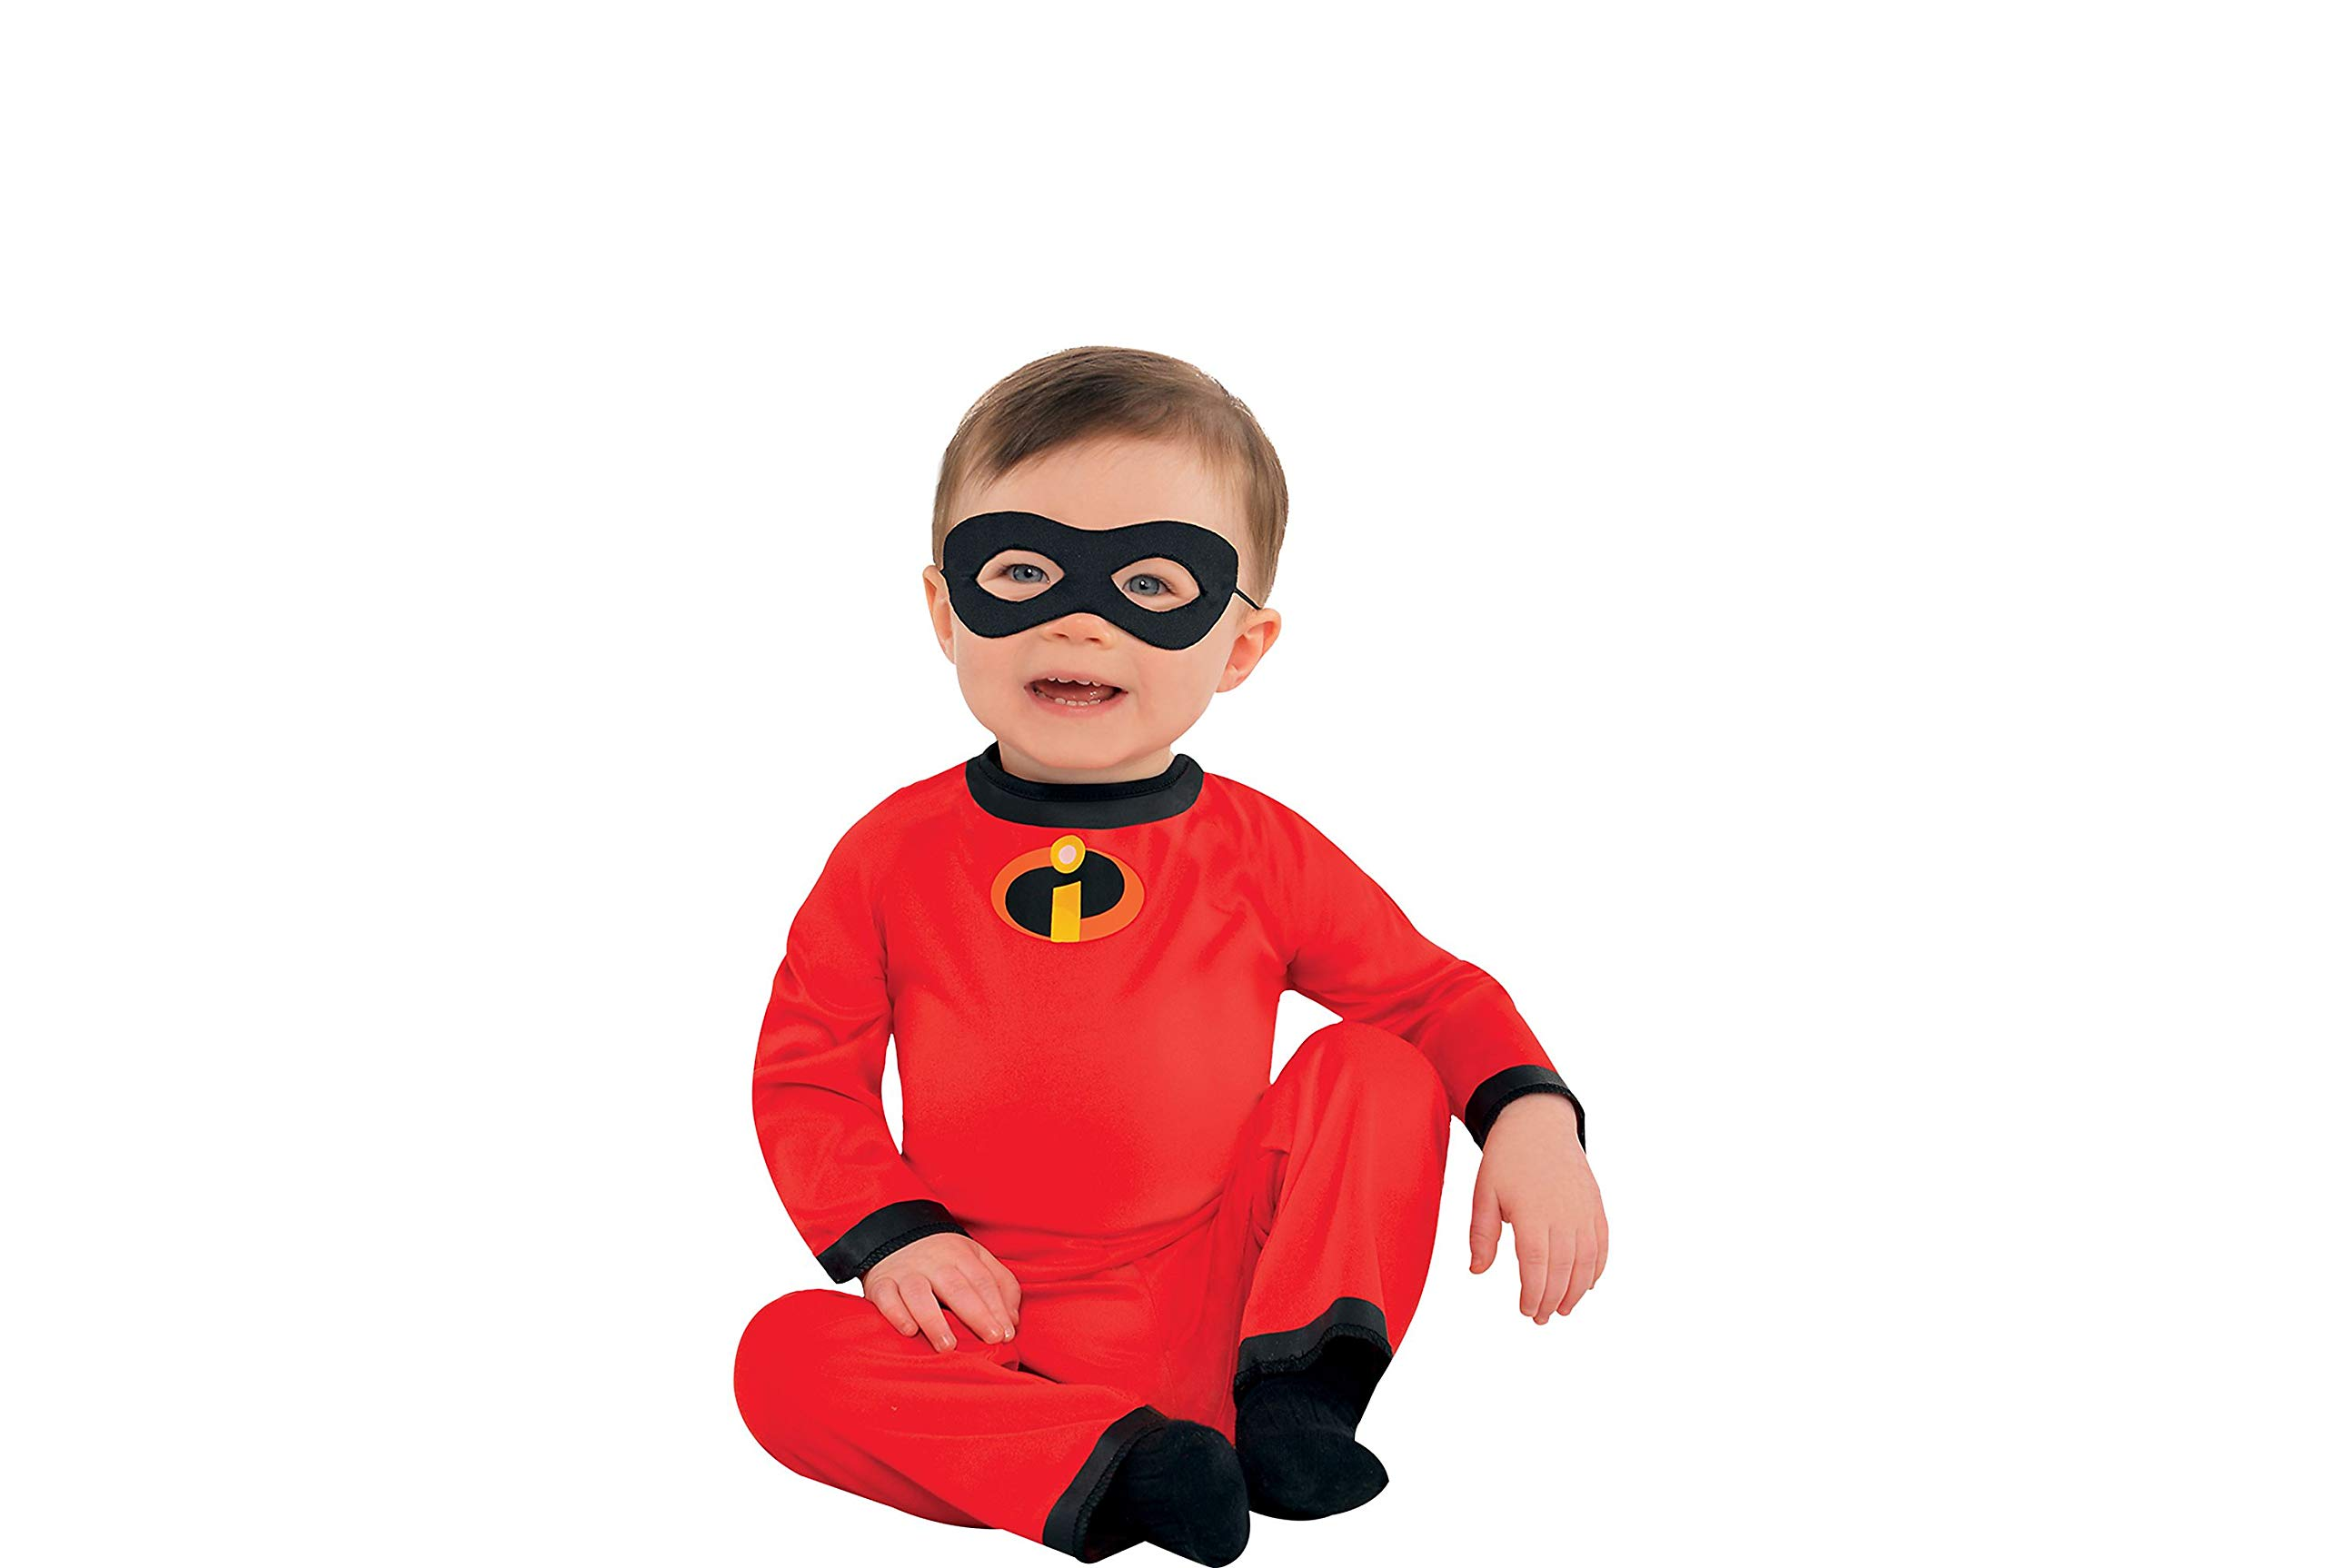 party city the incredibles baby jack jack halloween costume for infants 6 12 months with included accessories